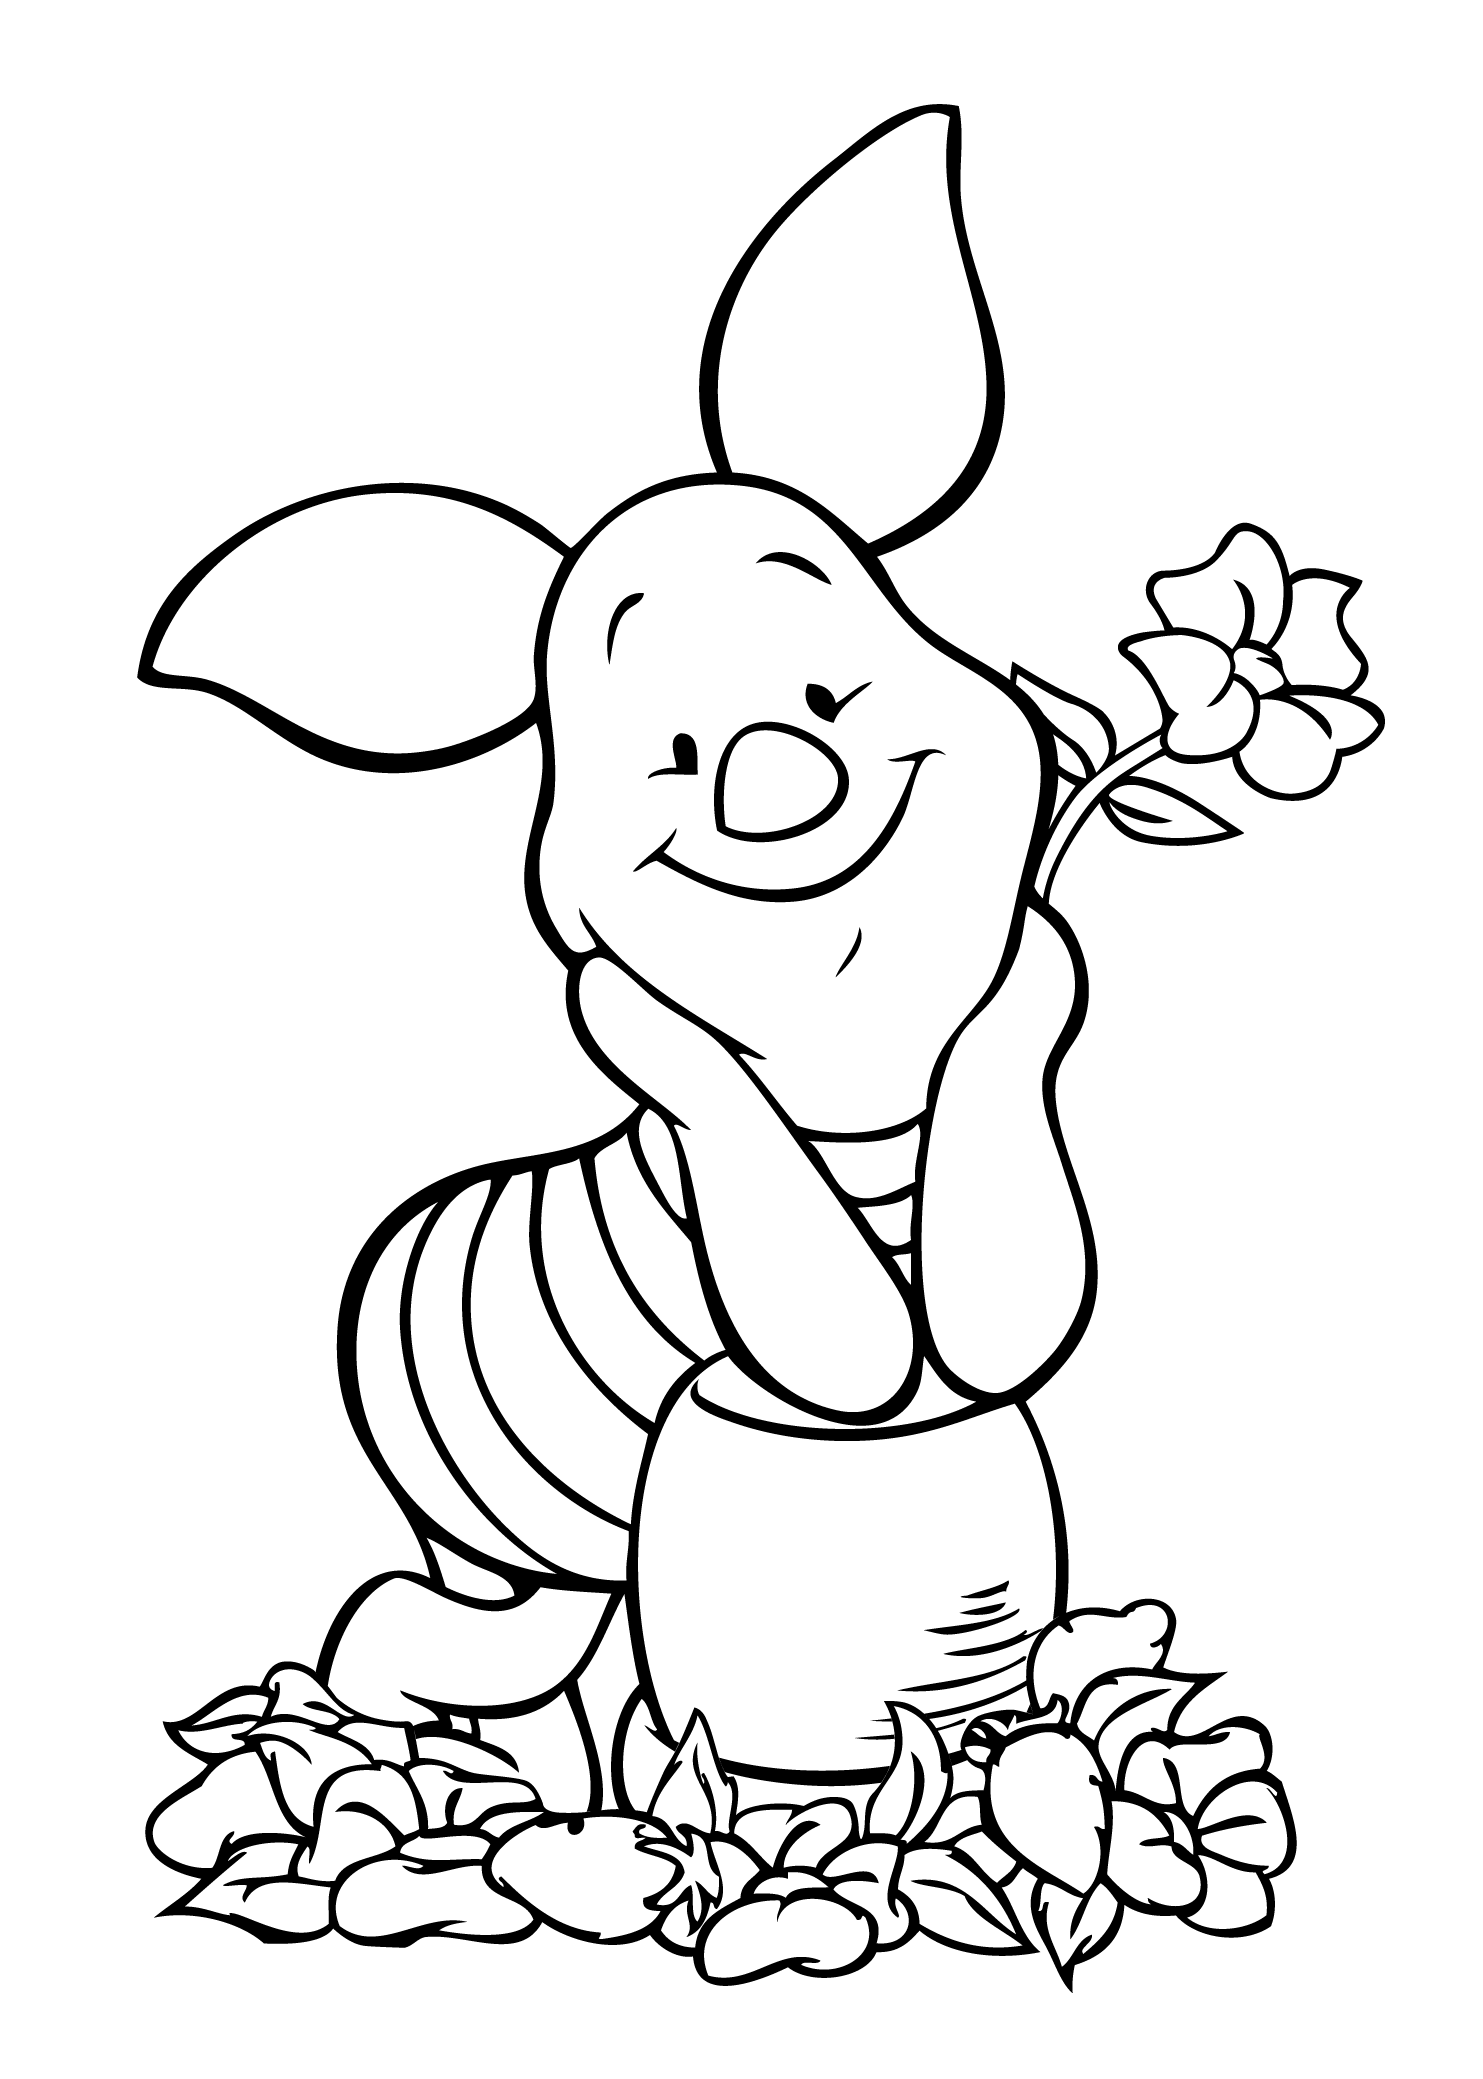 Winnie Pooh Piglet Coloring Page For Kids Free Printable Cartoon Coloring Pages Disney Coloring Pages Animal Coloring Pages